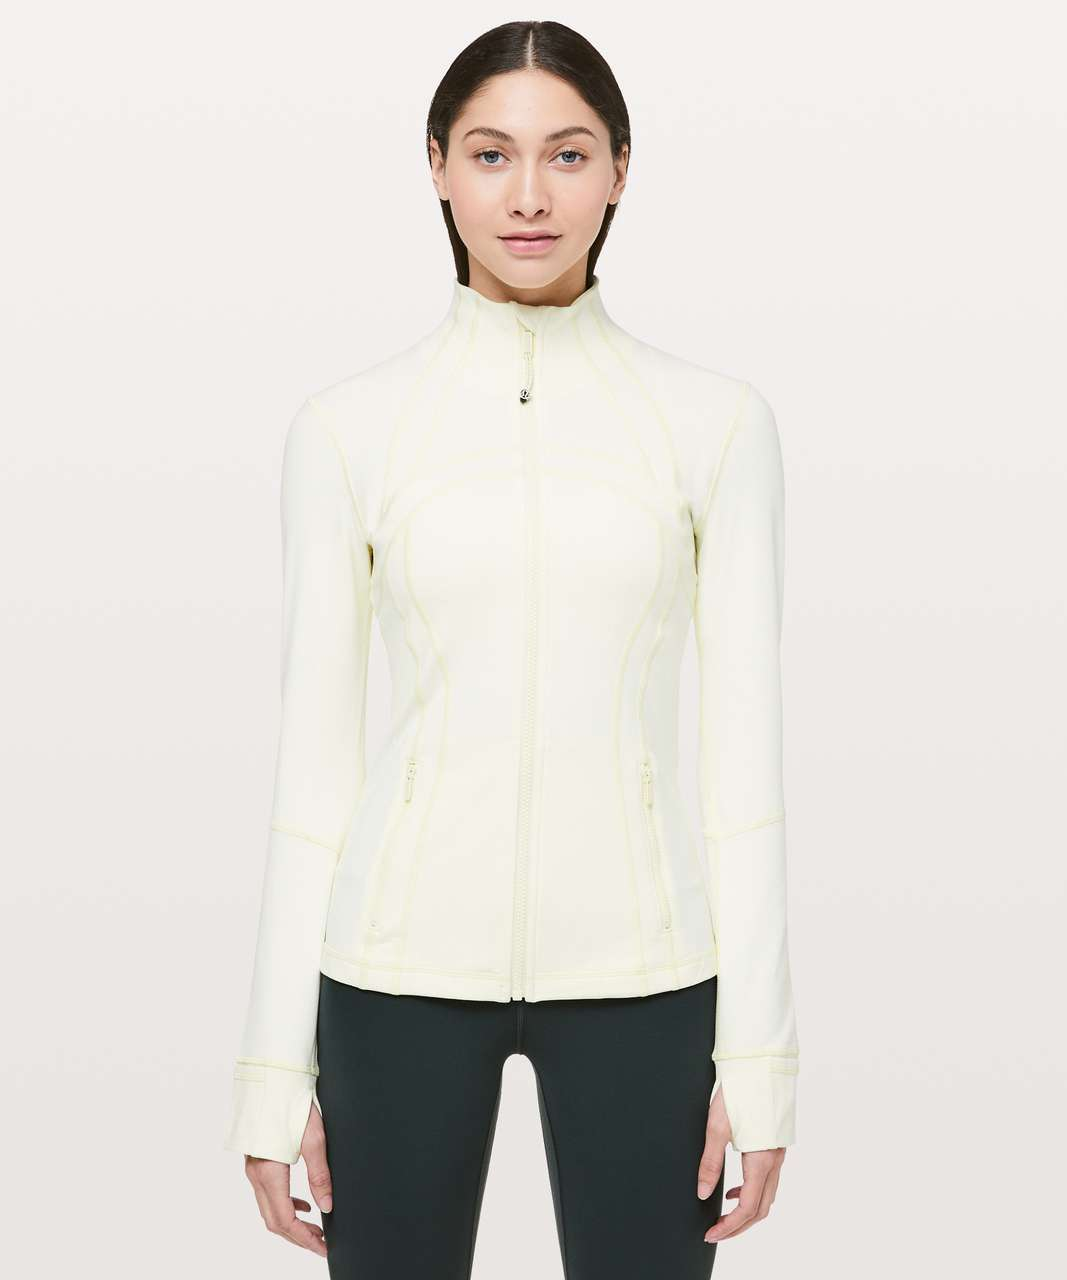 Lululemon Define Jacket - Sundance